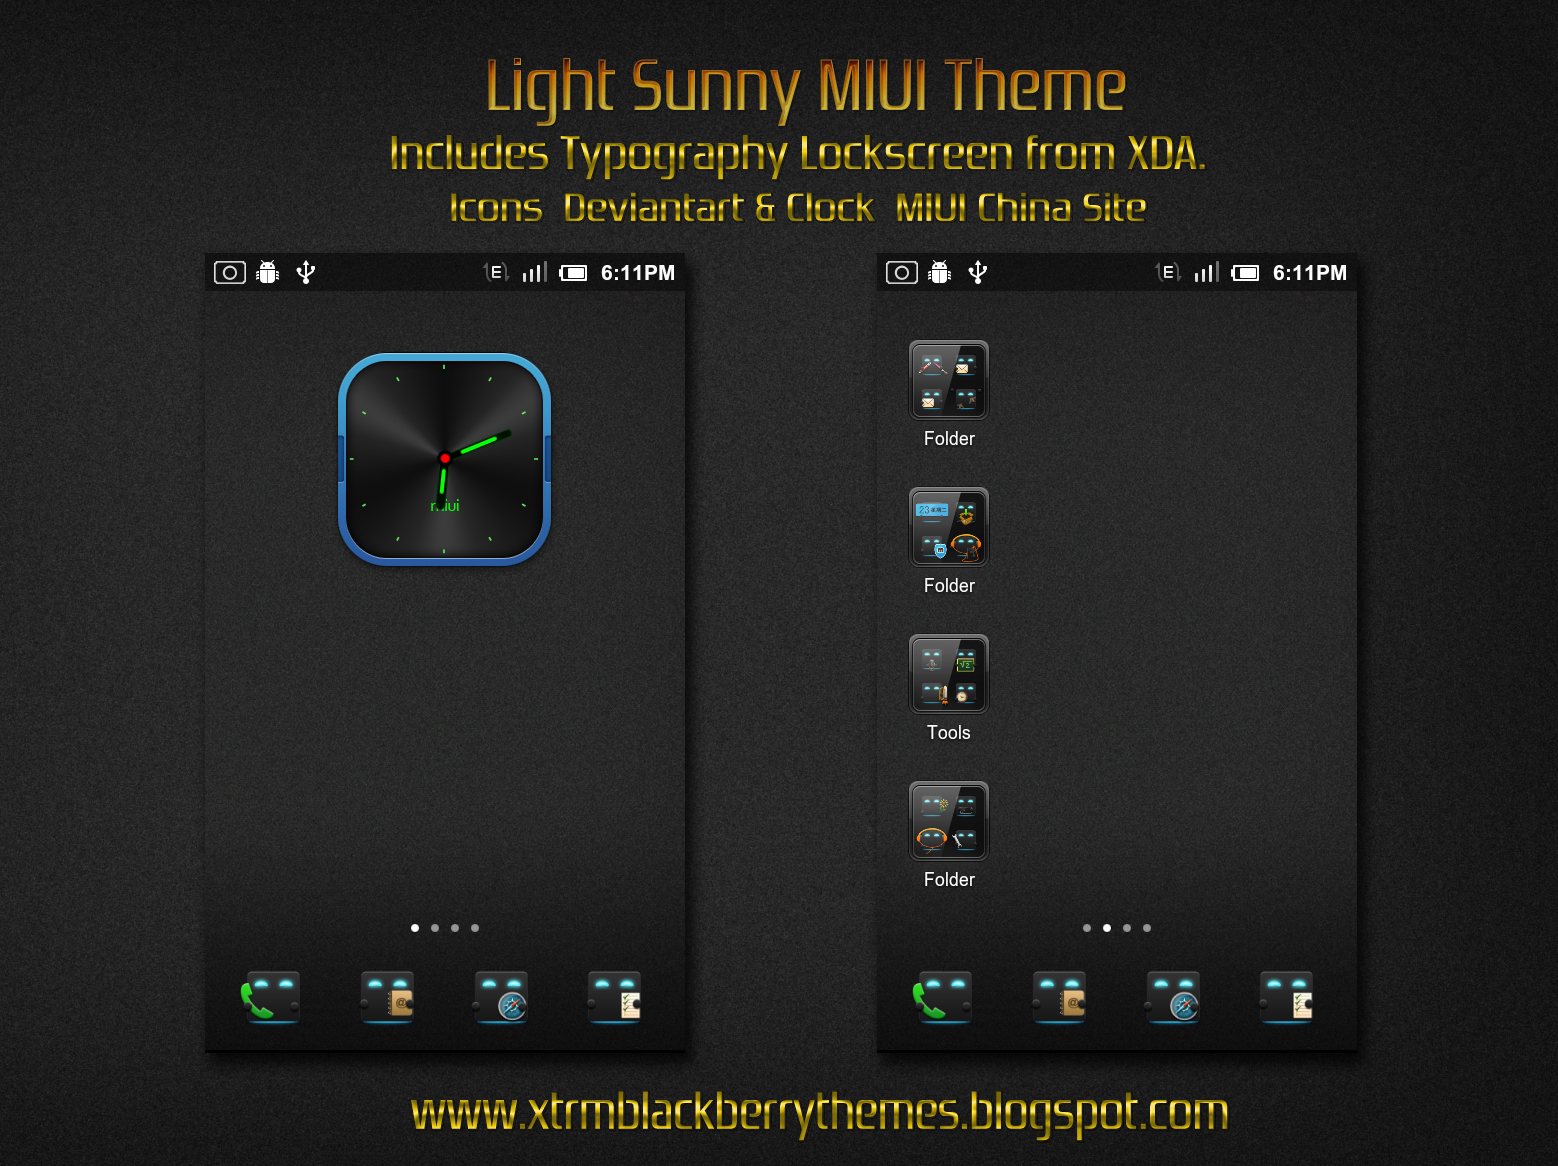 LIGHT SUNNY MIUI Theme